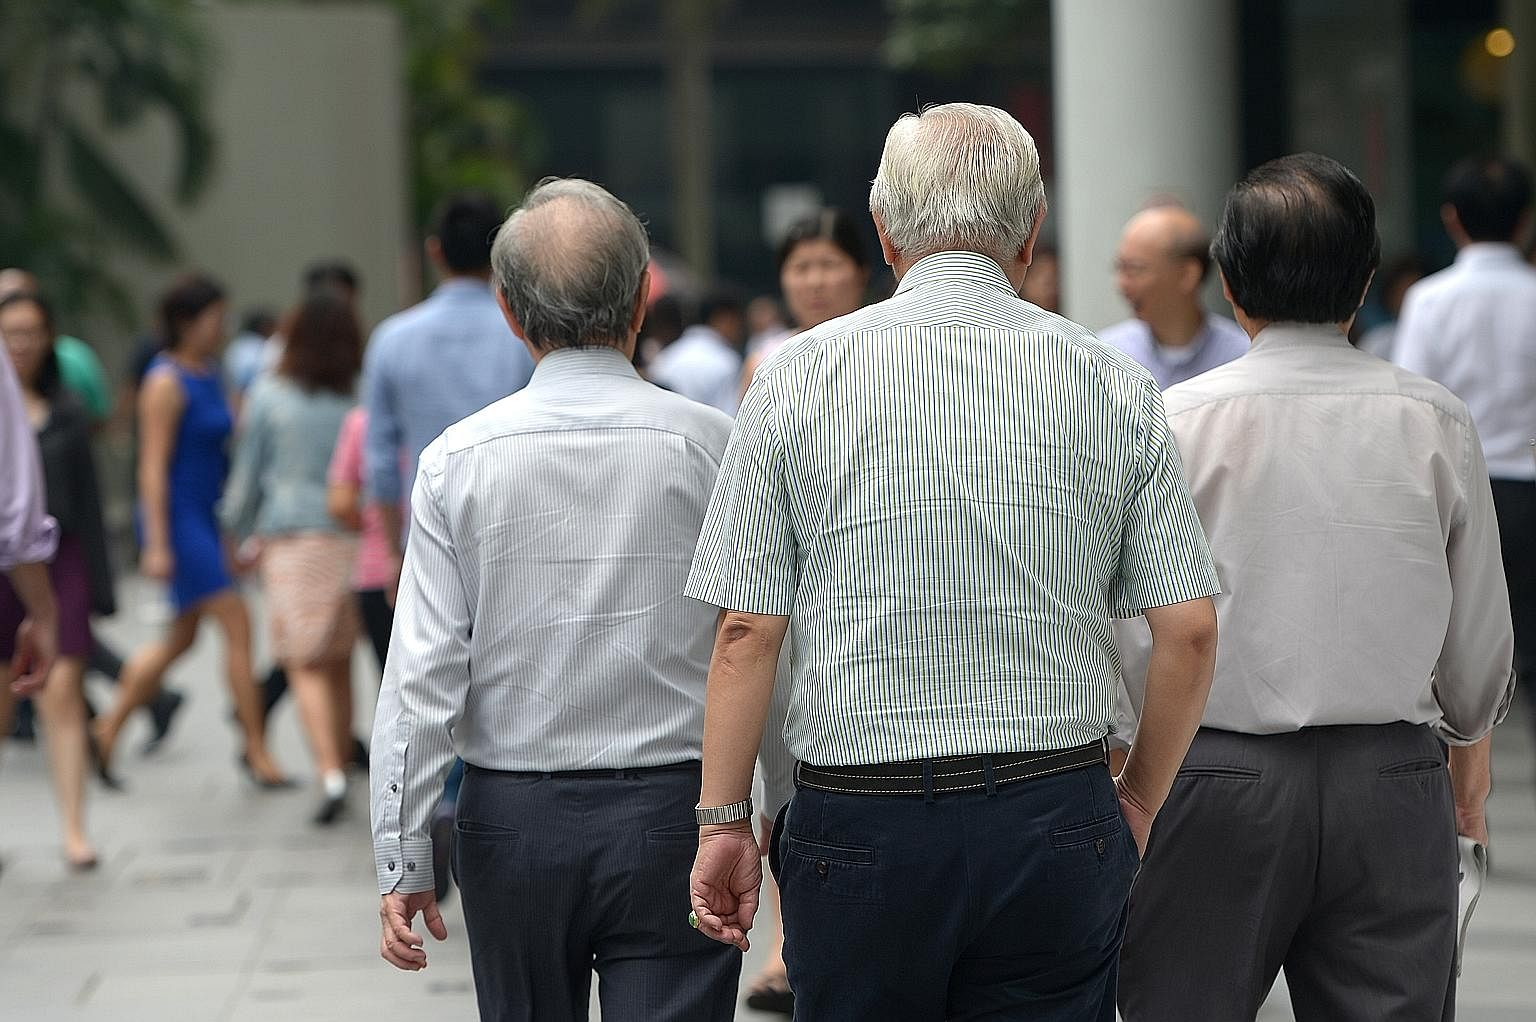 The working-age citizen population aged 20 to 64 is expected to peak around this year, and then start to decline. It is projected that one in four Singaporeans will be 65 and older by 2030. If no action is taken, the average age of people employed he